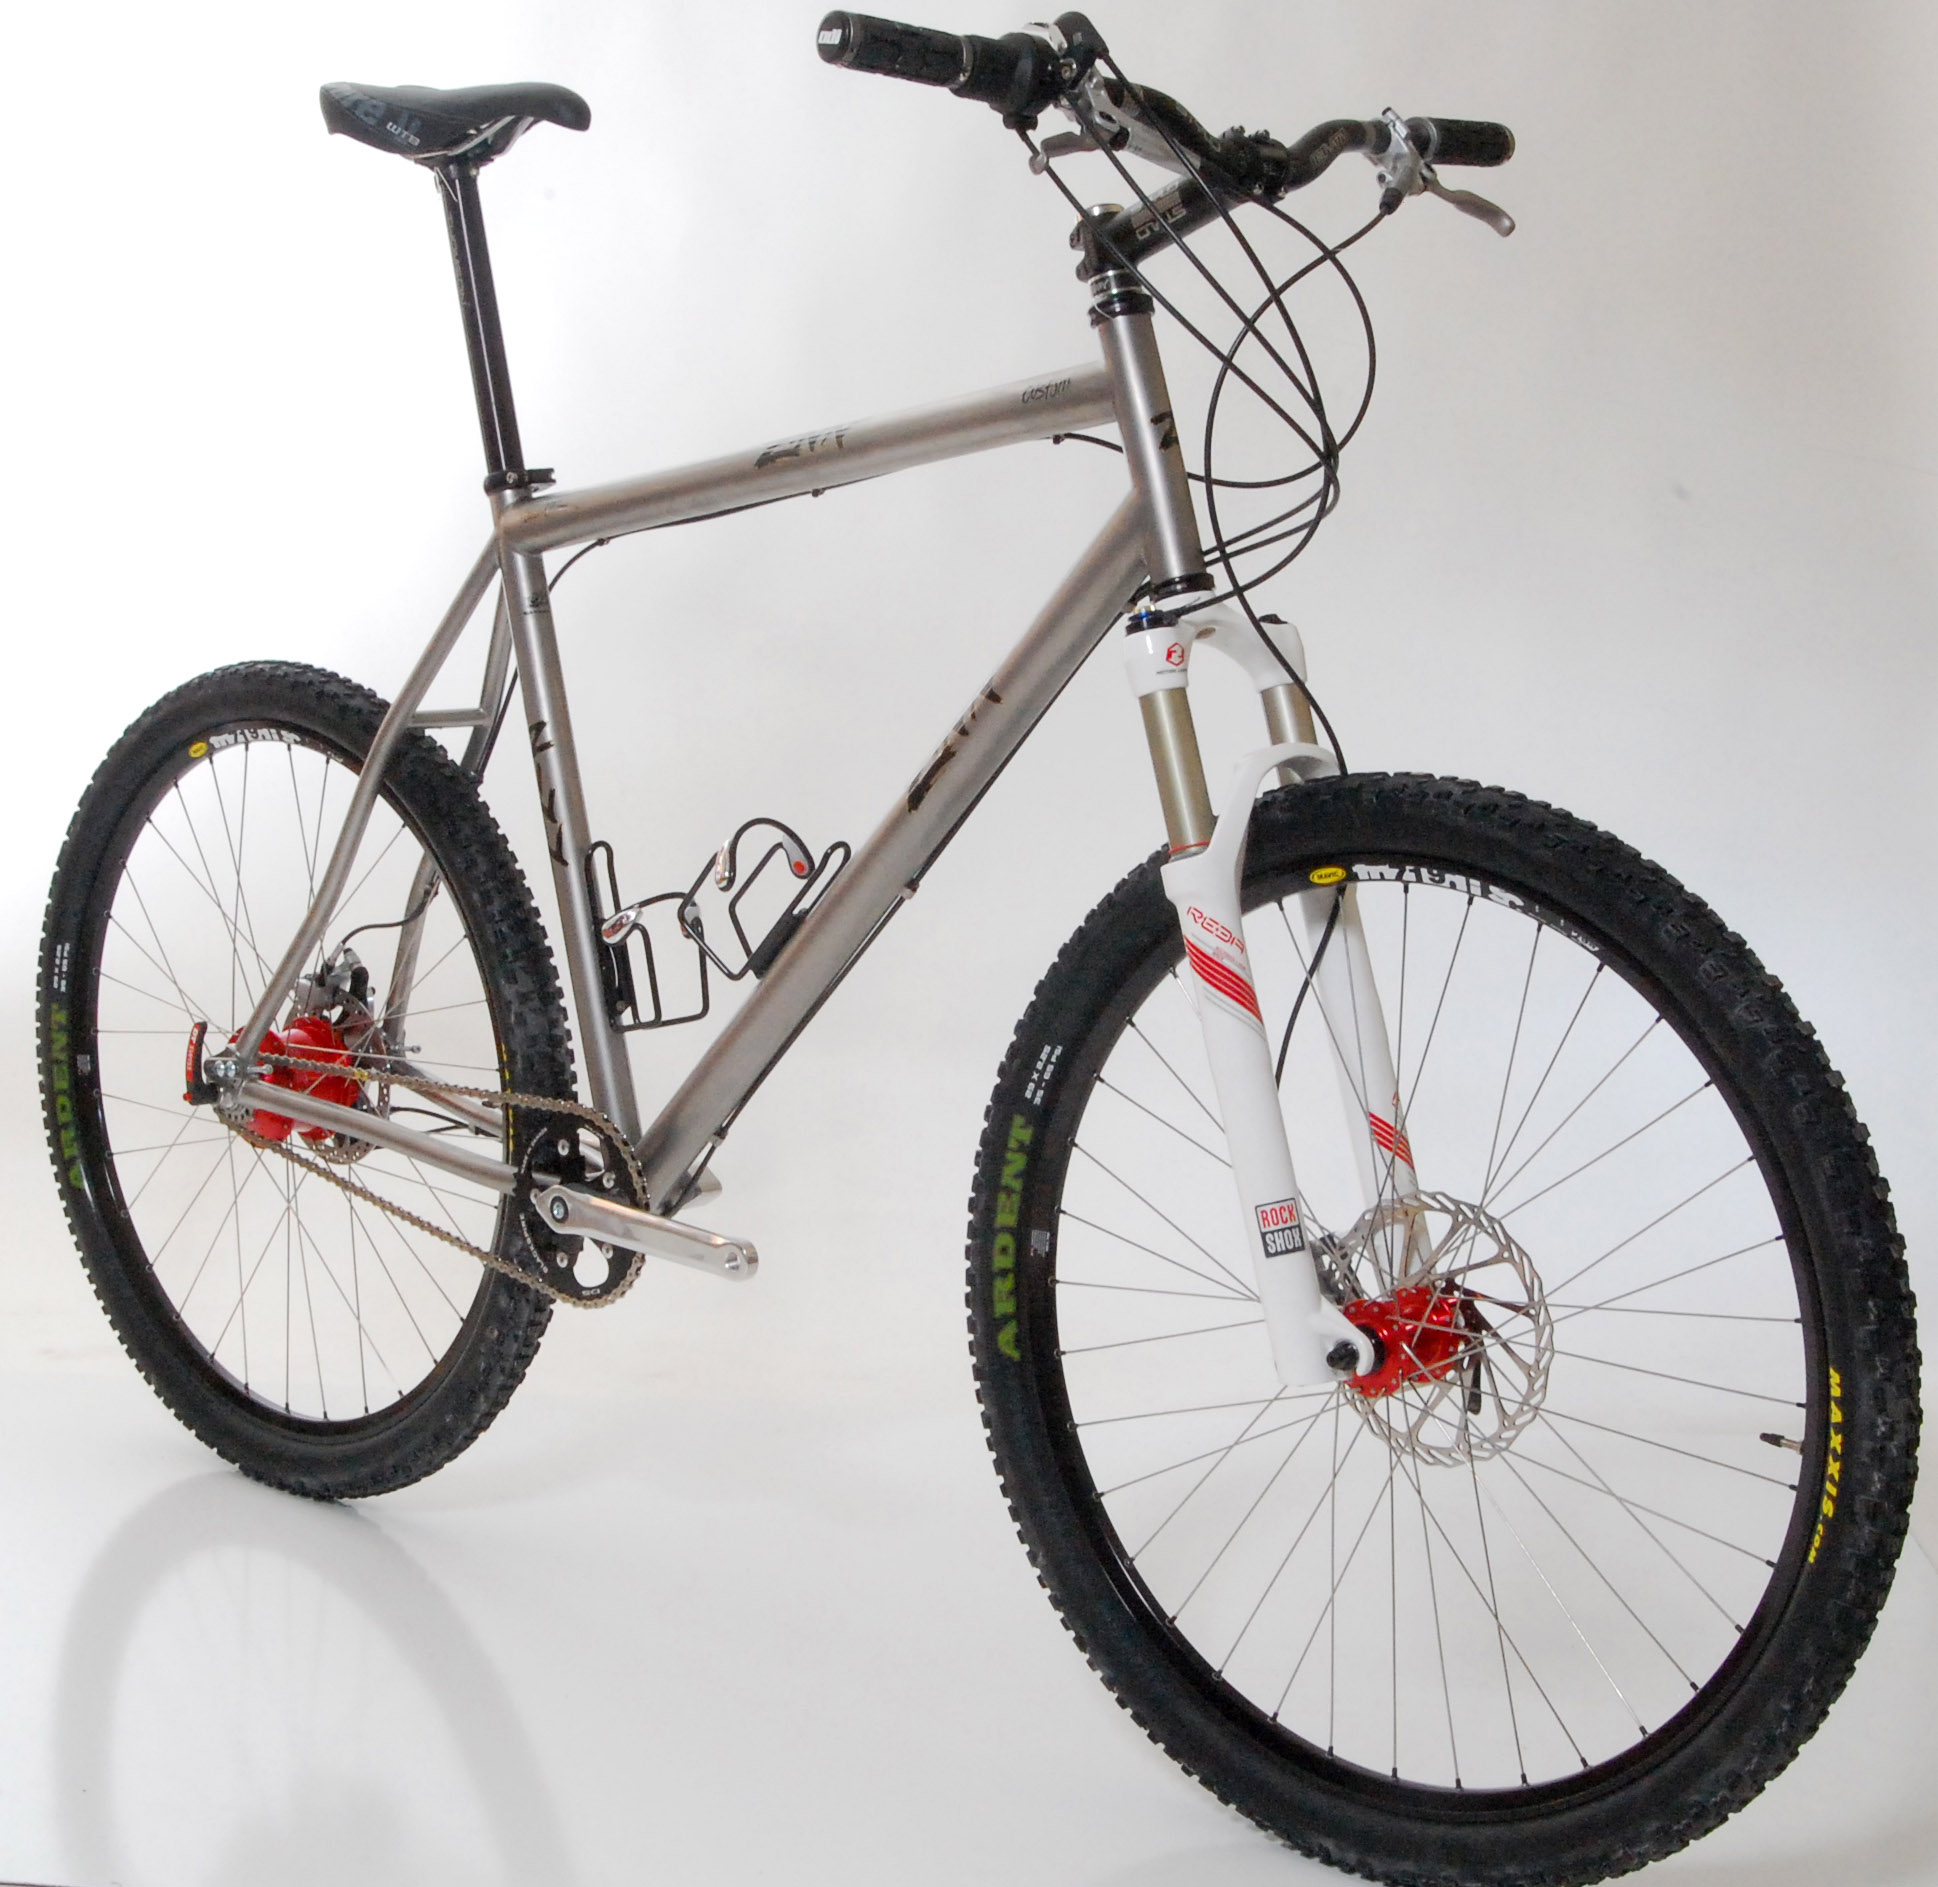 titanium mountain bike best seller bicycle review. Black Bedroom Furniture Sets. Home Design Ideas